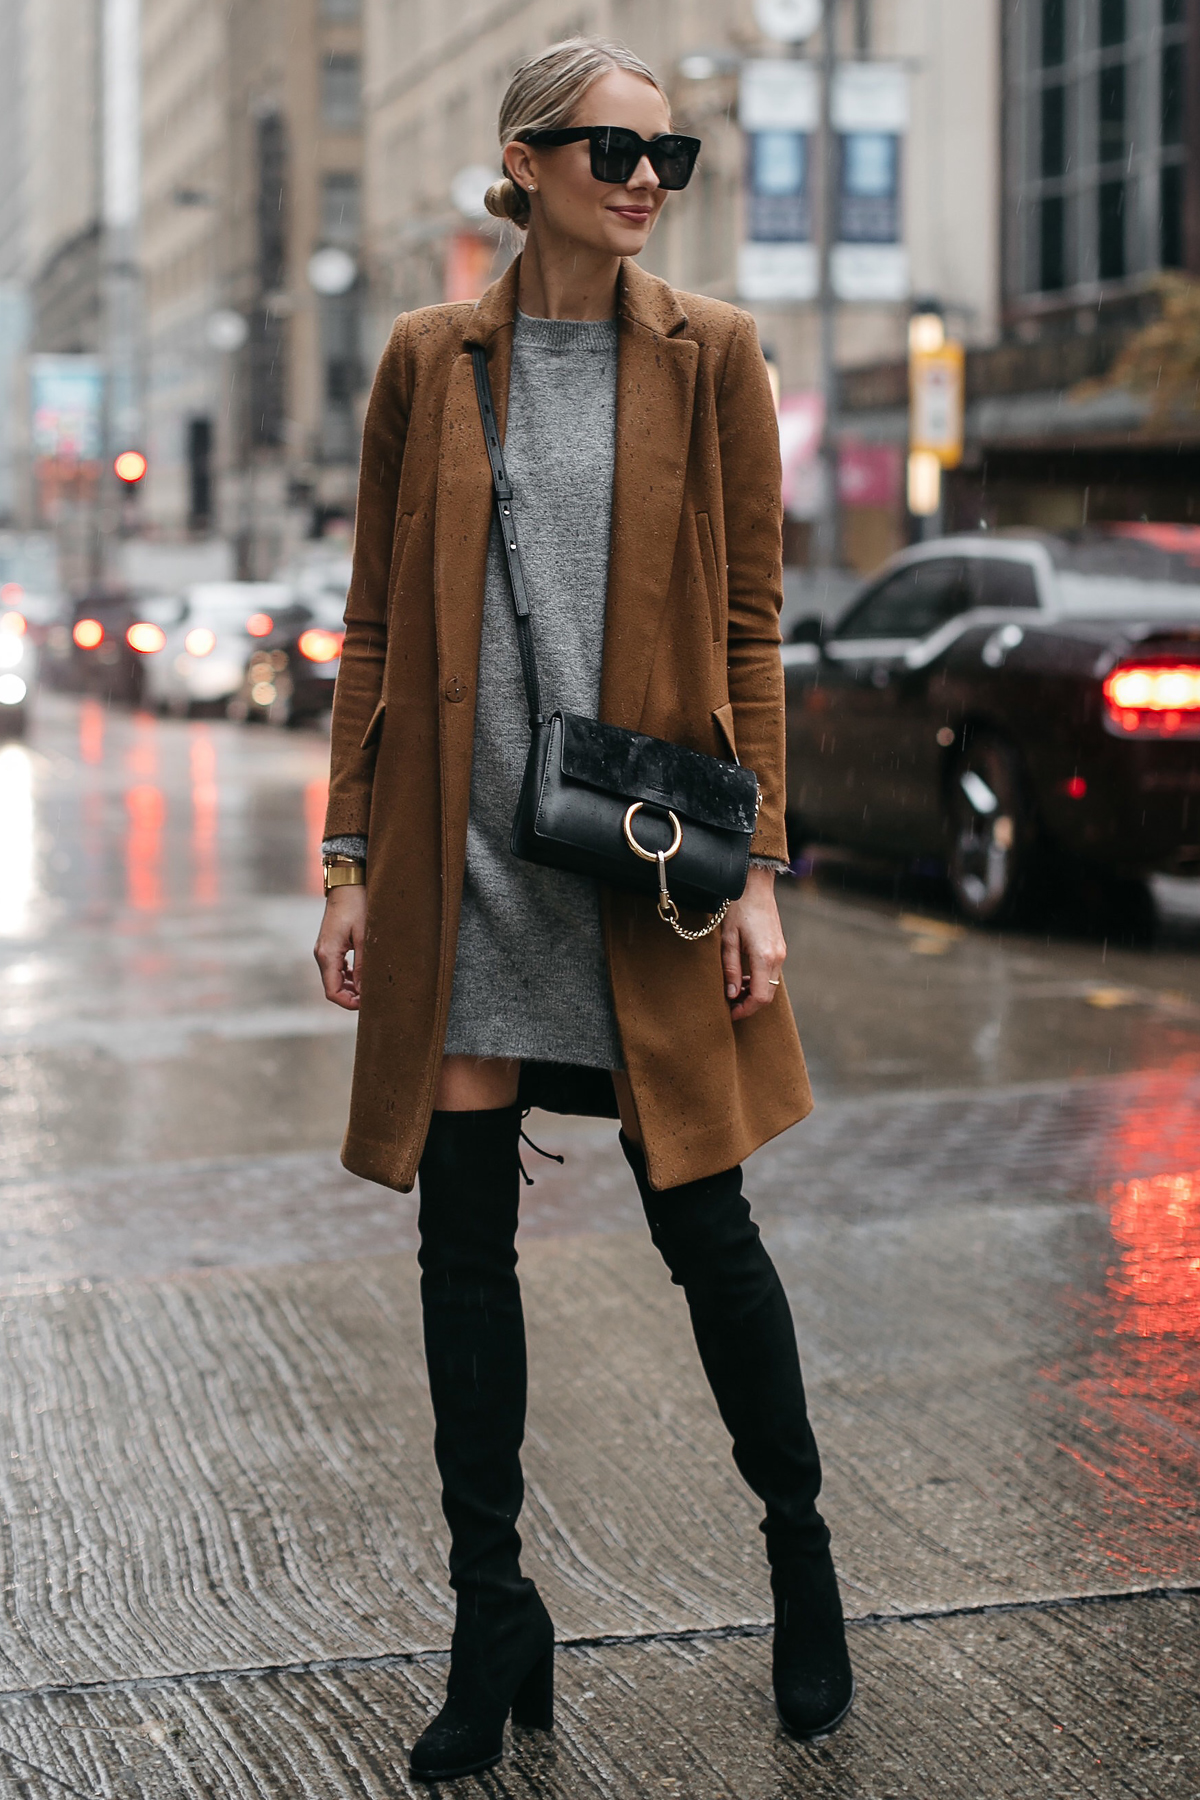 Blonde Woman Wearing Zara Camel Wool Coat Topshop Grey Sweater Dress Chloe Faye Handbag Stuart Weitzman Black Over the Knee Boots Fashion Jackson Dallas Blogger Fashion Blogger Street Style